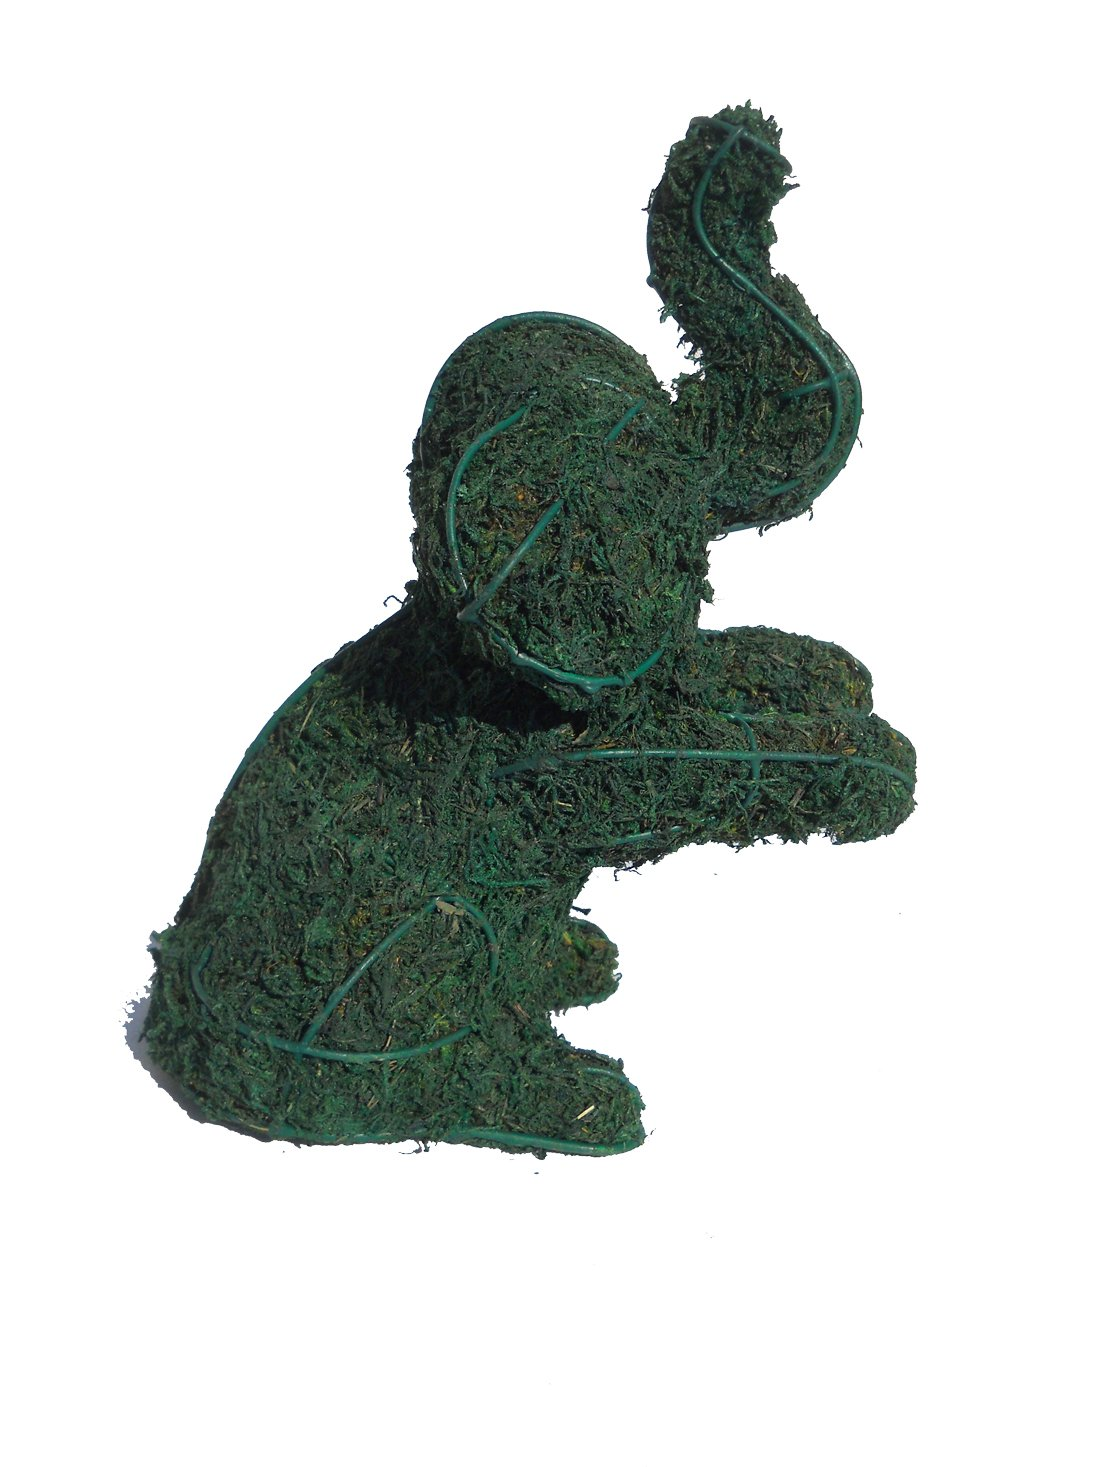 Elephant Sitting 8 Inches High Moss Topiary Frame, Handmade Animal Decoration